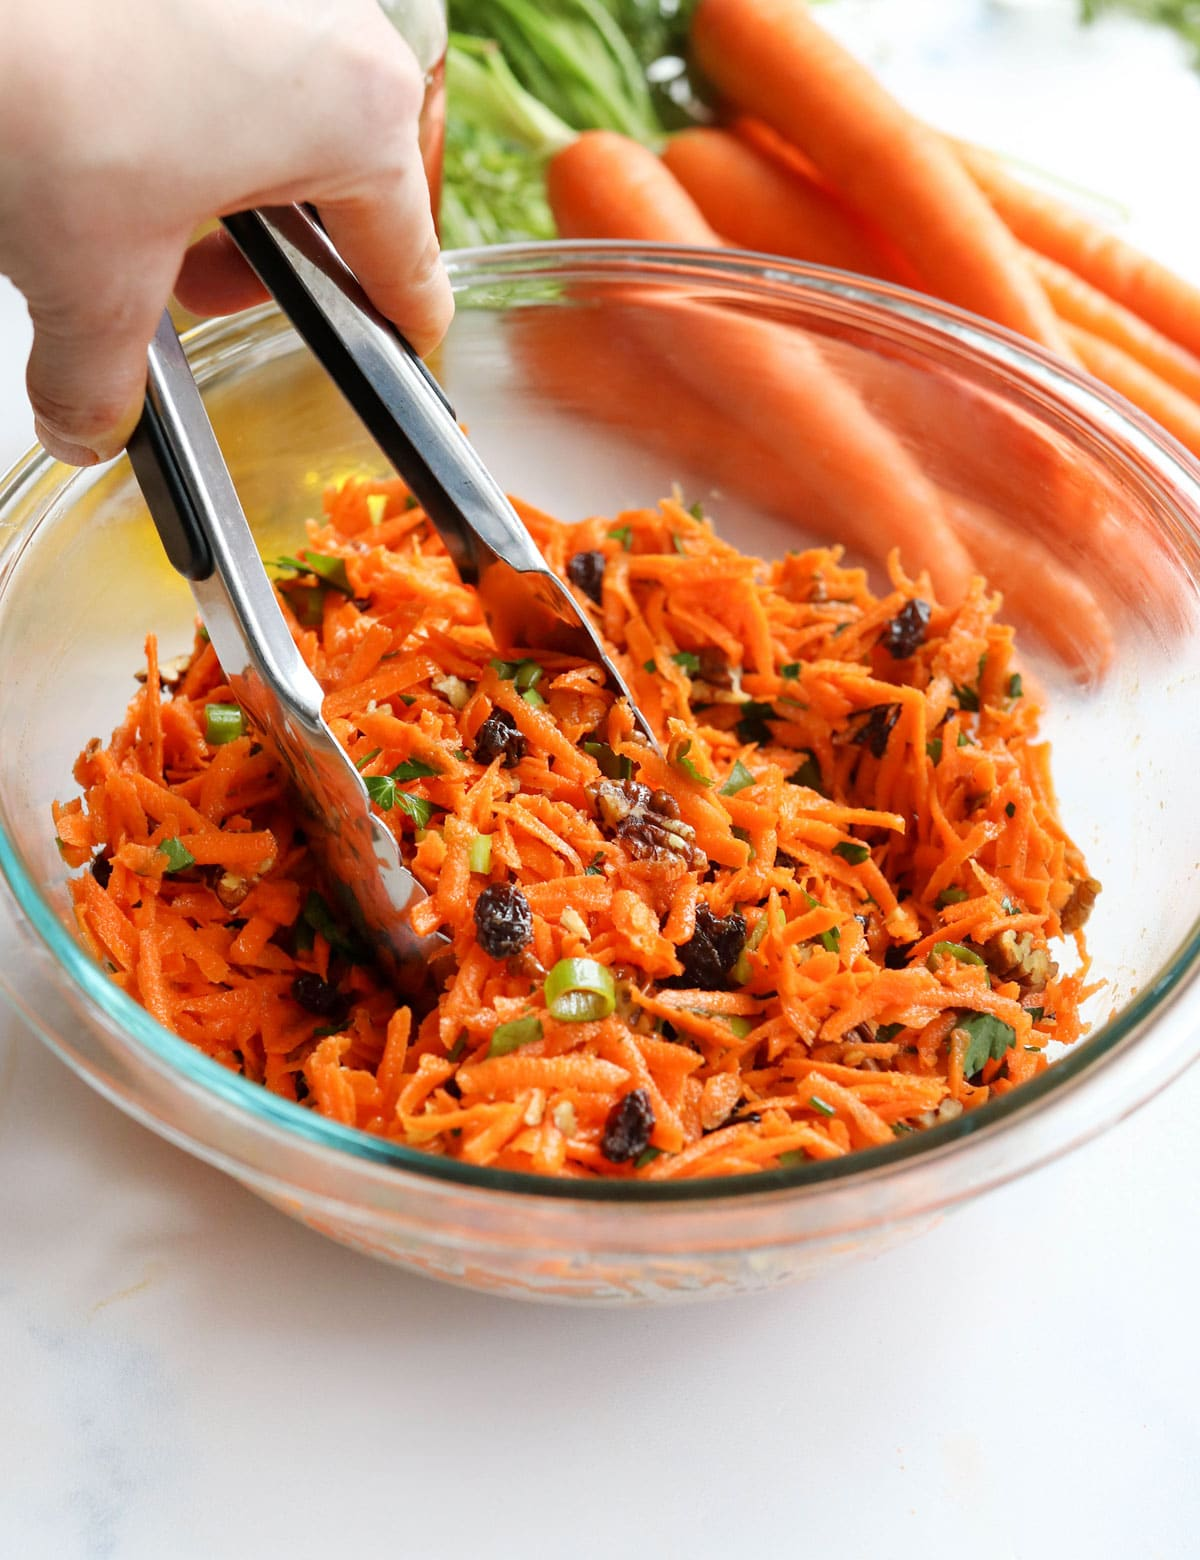 carrot salad in glass bowl with tongs